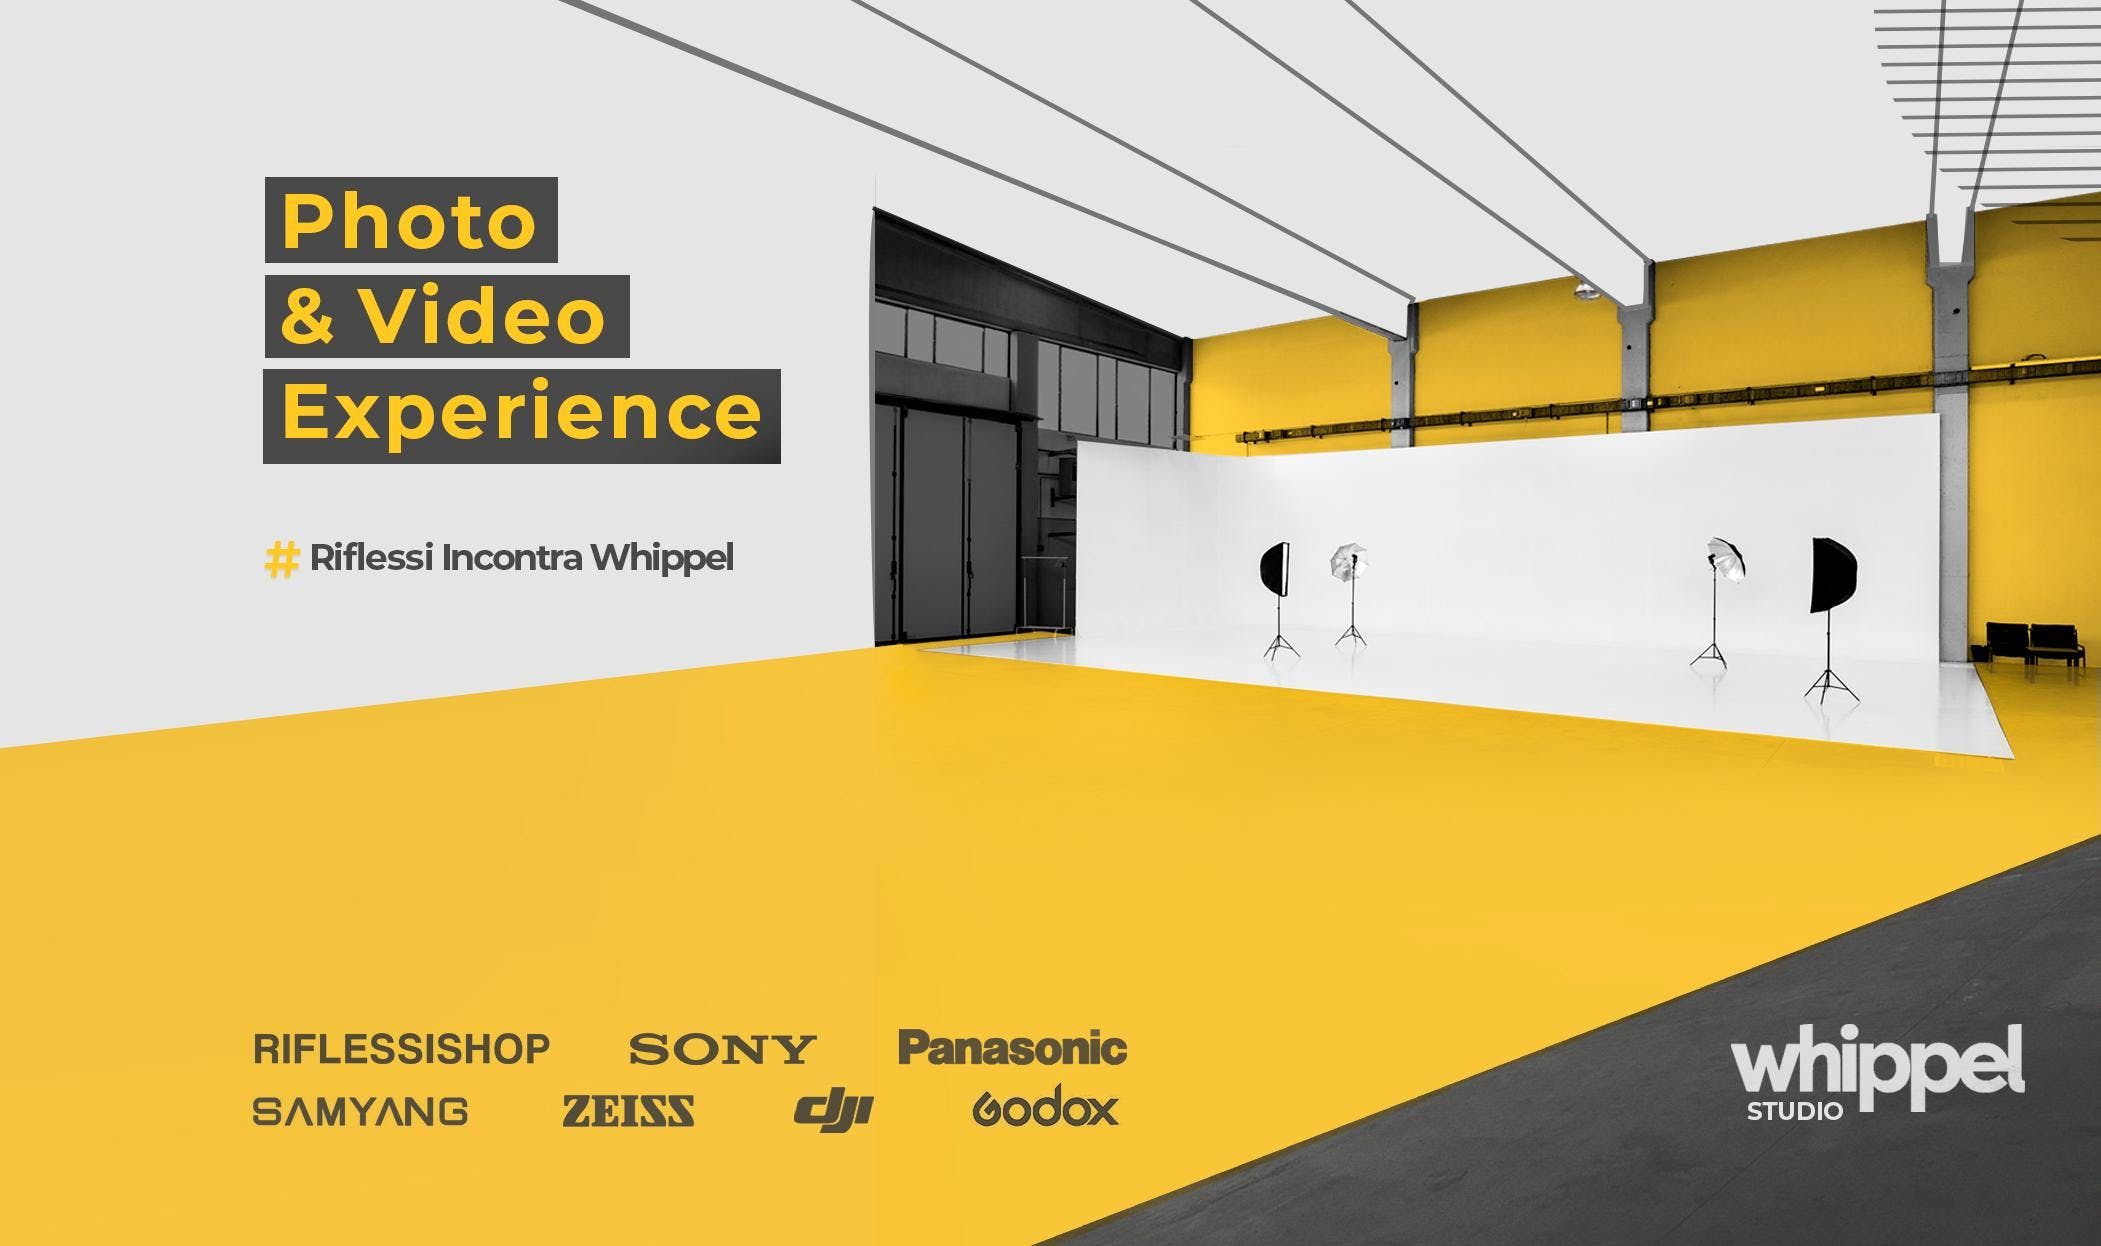 Whippel - Photo & Video Studio Experience